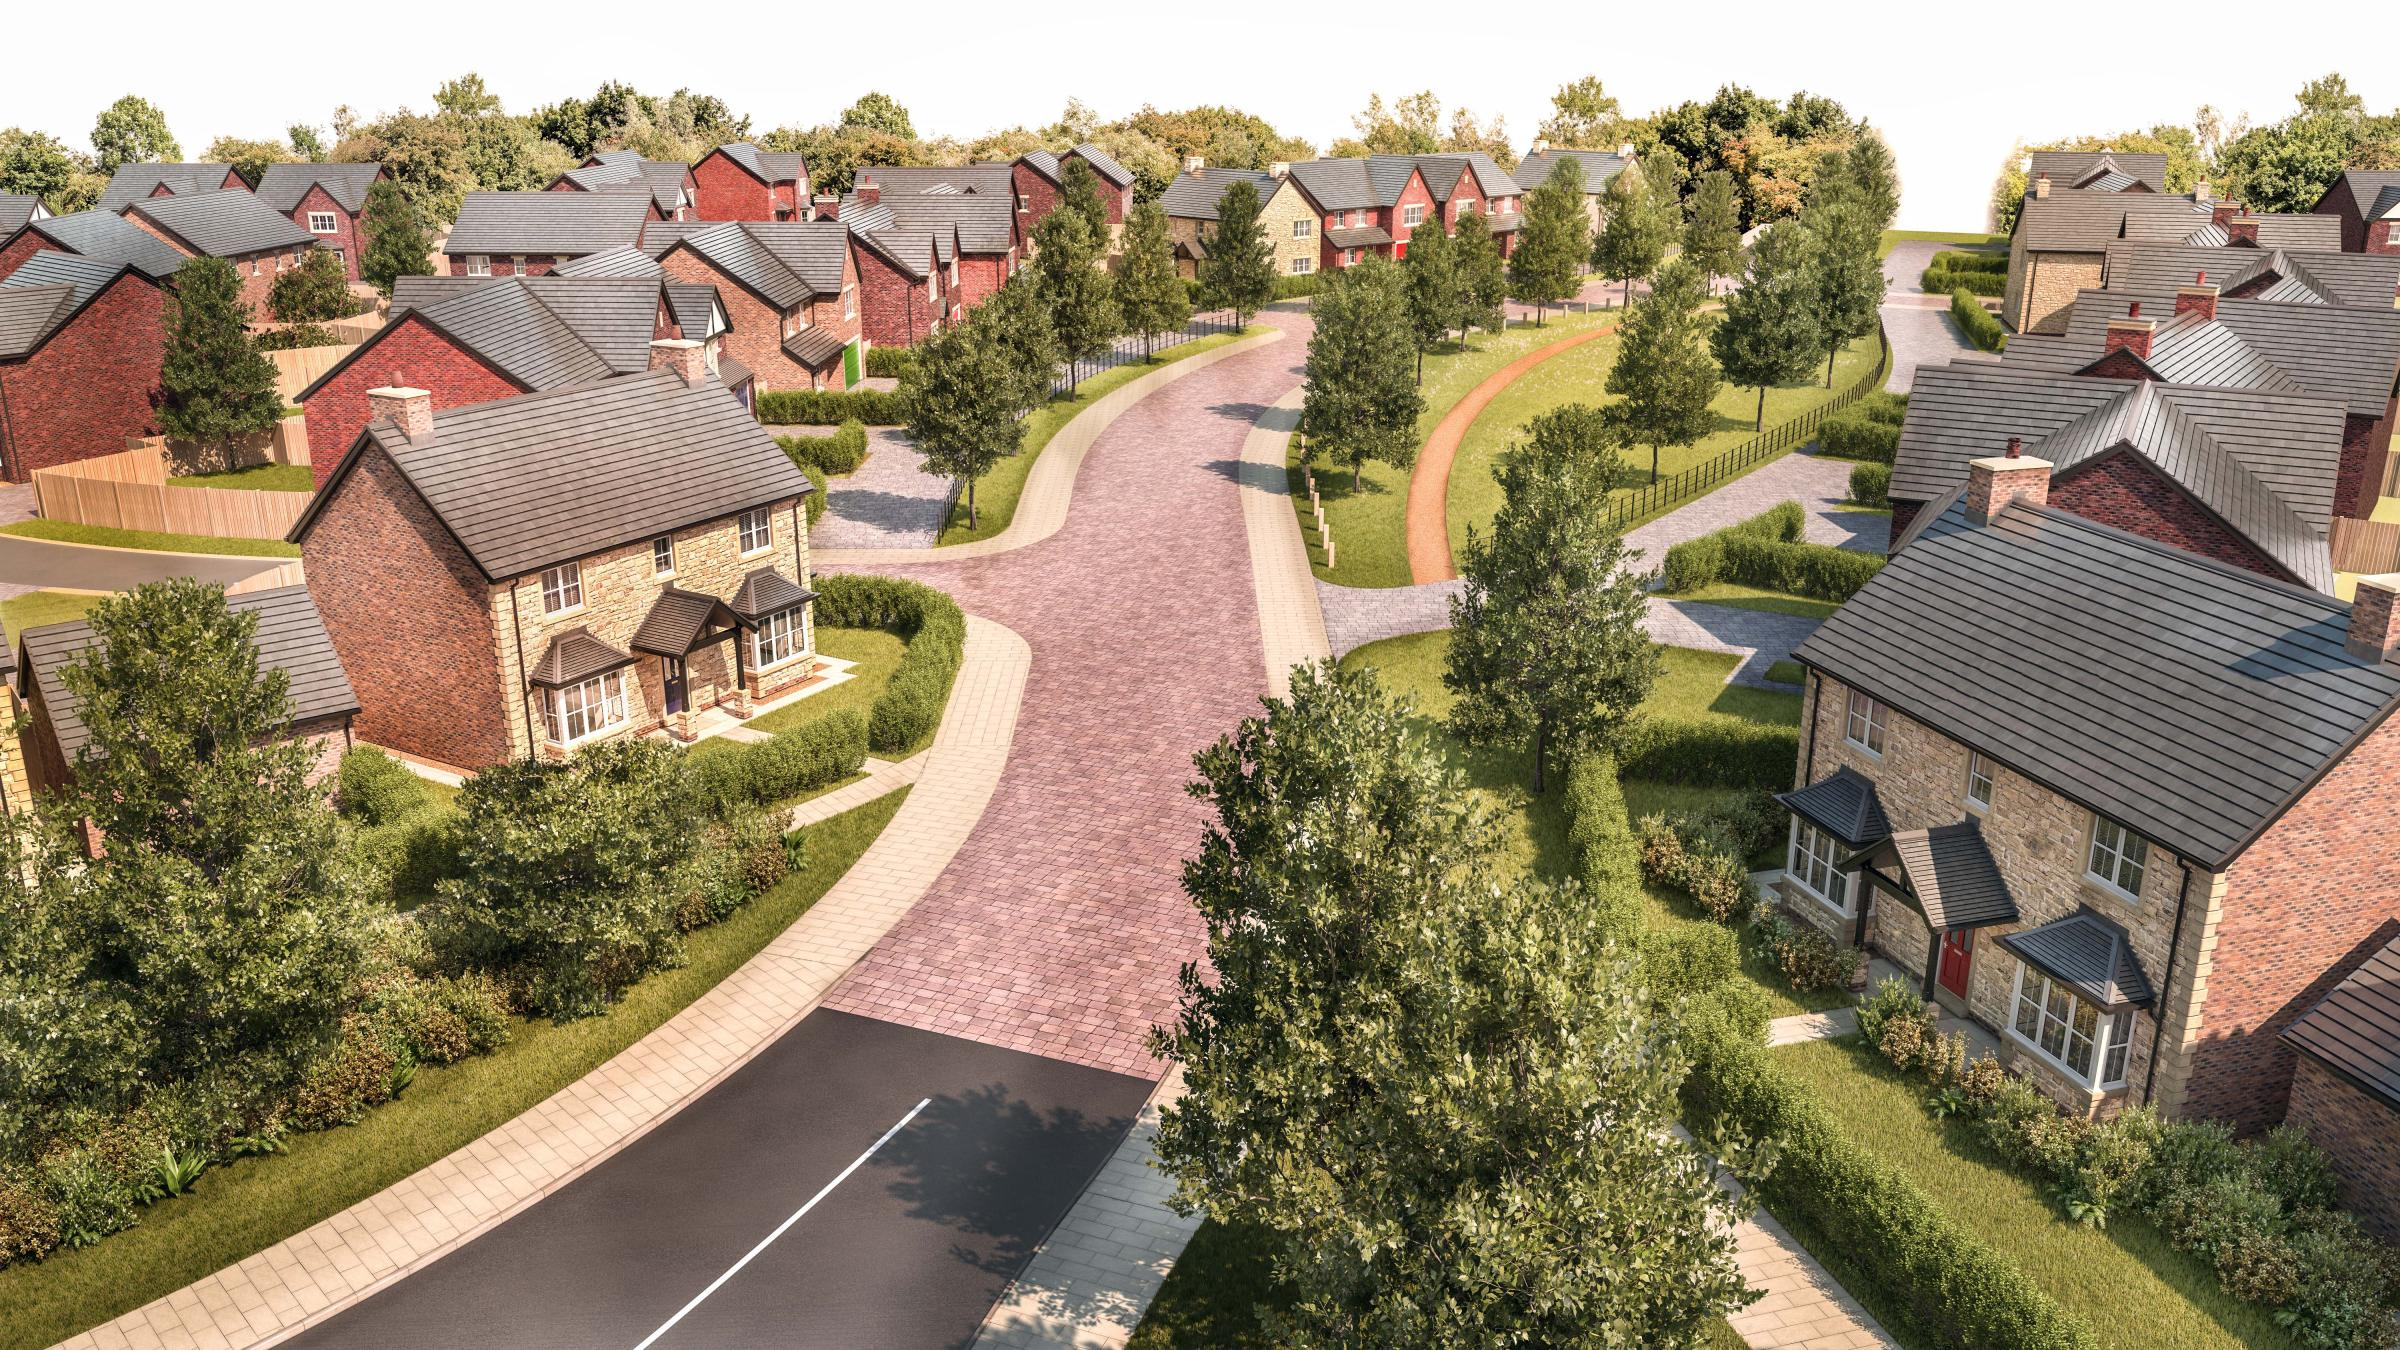 An artist's impression of the proposed housing development near Eden Drive in Sedgefield